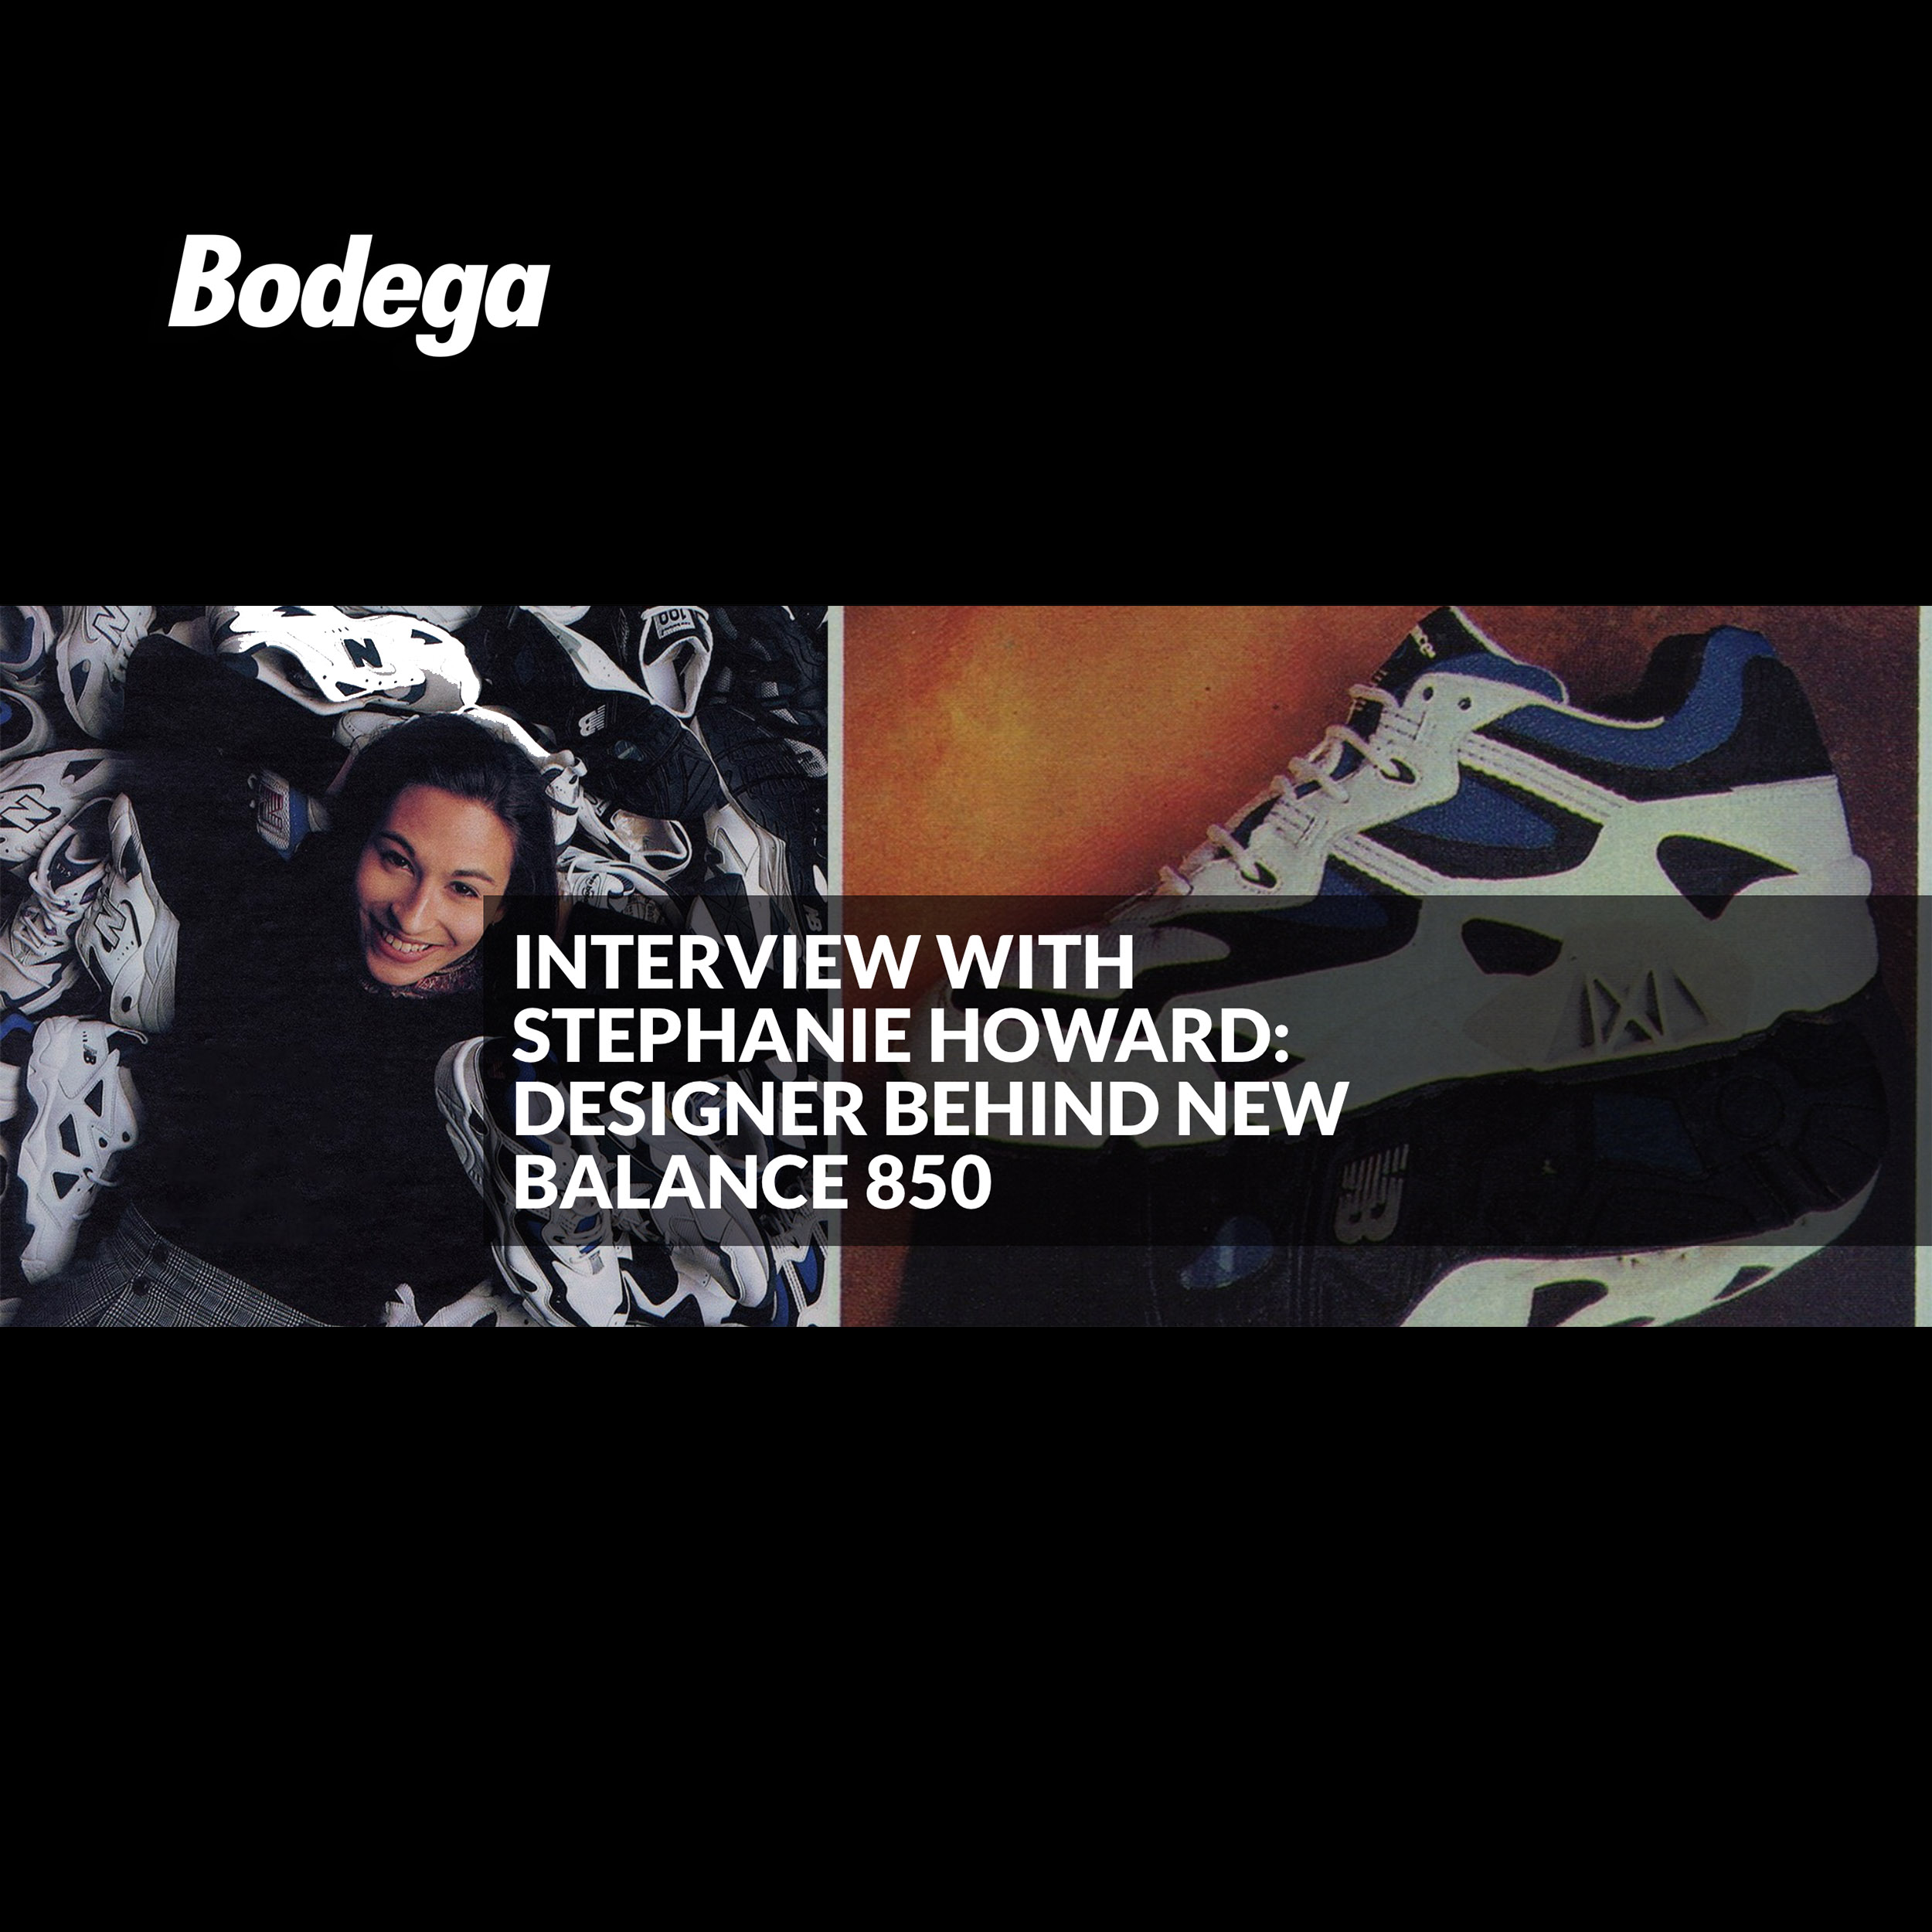 Bodega Interview - To commemorate the re-release of the New Balance 850, we caught up with head designer, Stephanie Howard, and asked her to take us back to the early days of the shoe's conception. When the 850 first hit stores back in 1996, Howard was the youngest designer over at New Balance. Today, she is the Founder and Creative Director at the award-winning design studio, How and Why. In the course of our conversation, Howard discusses her innovative design concepts, the general climate surrounding the shoe's release, and its ability to stand the test of time 23 years later.